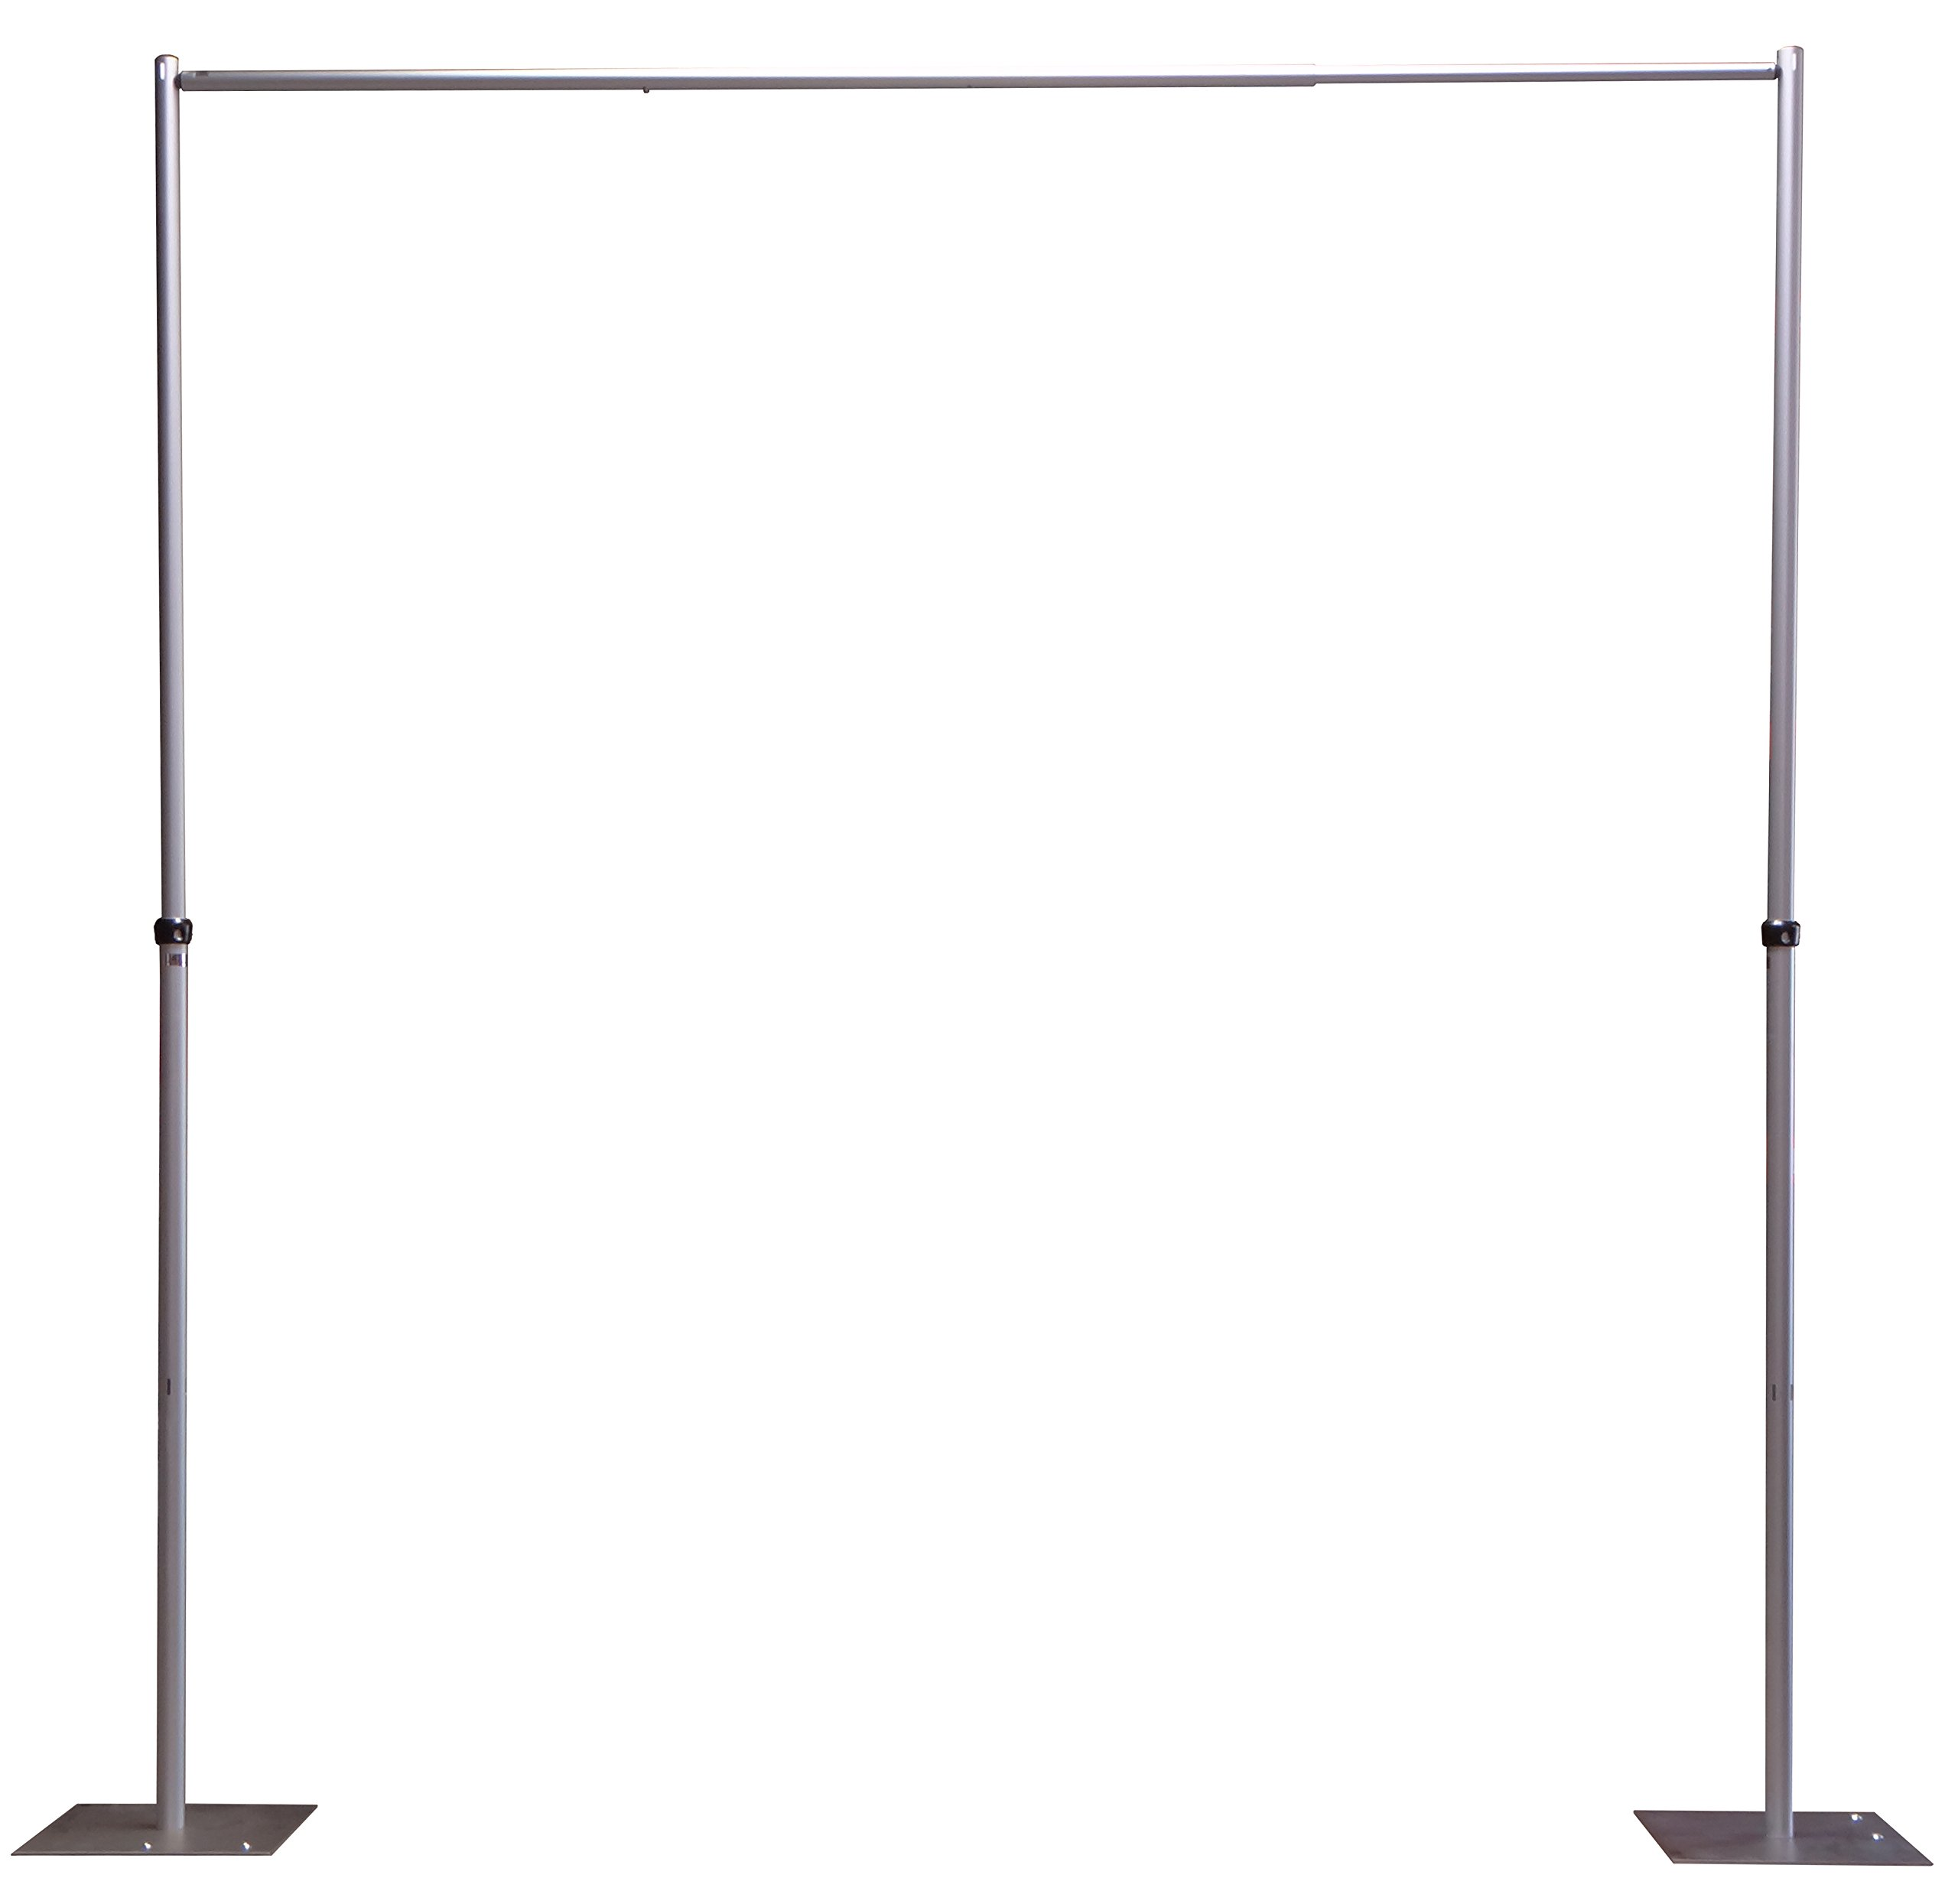 OnlineEEI, Adjustable Height Pipe and Drape Backdrop or Room Divider Kit, 7ft to 12ft High x 7ft to 12ft Wide, Premier Drape Not Included by OnlineEEI